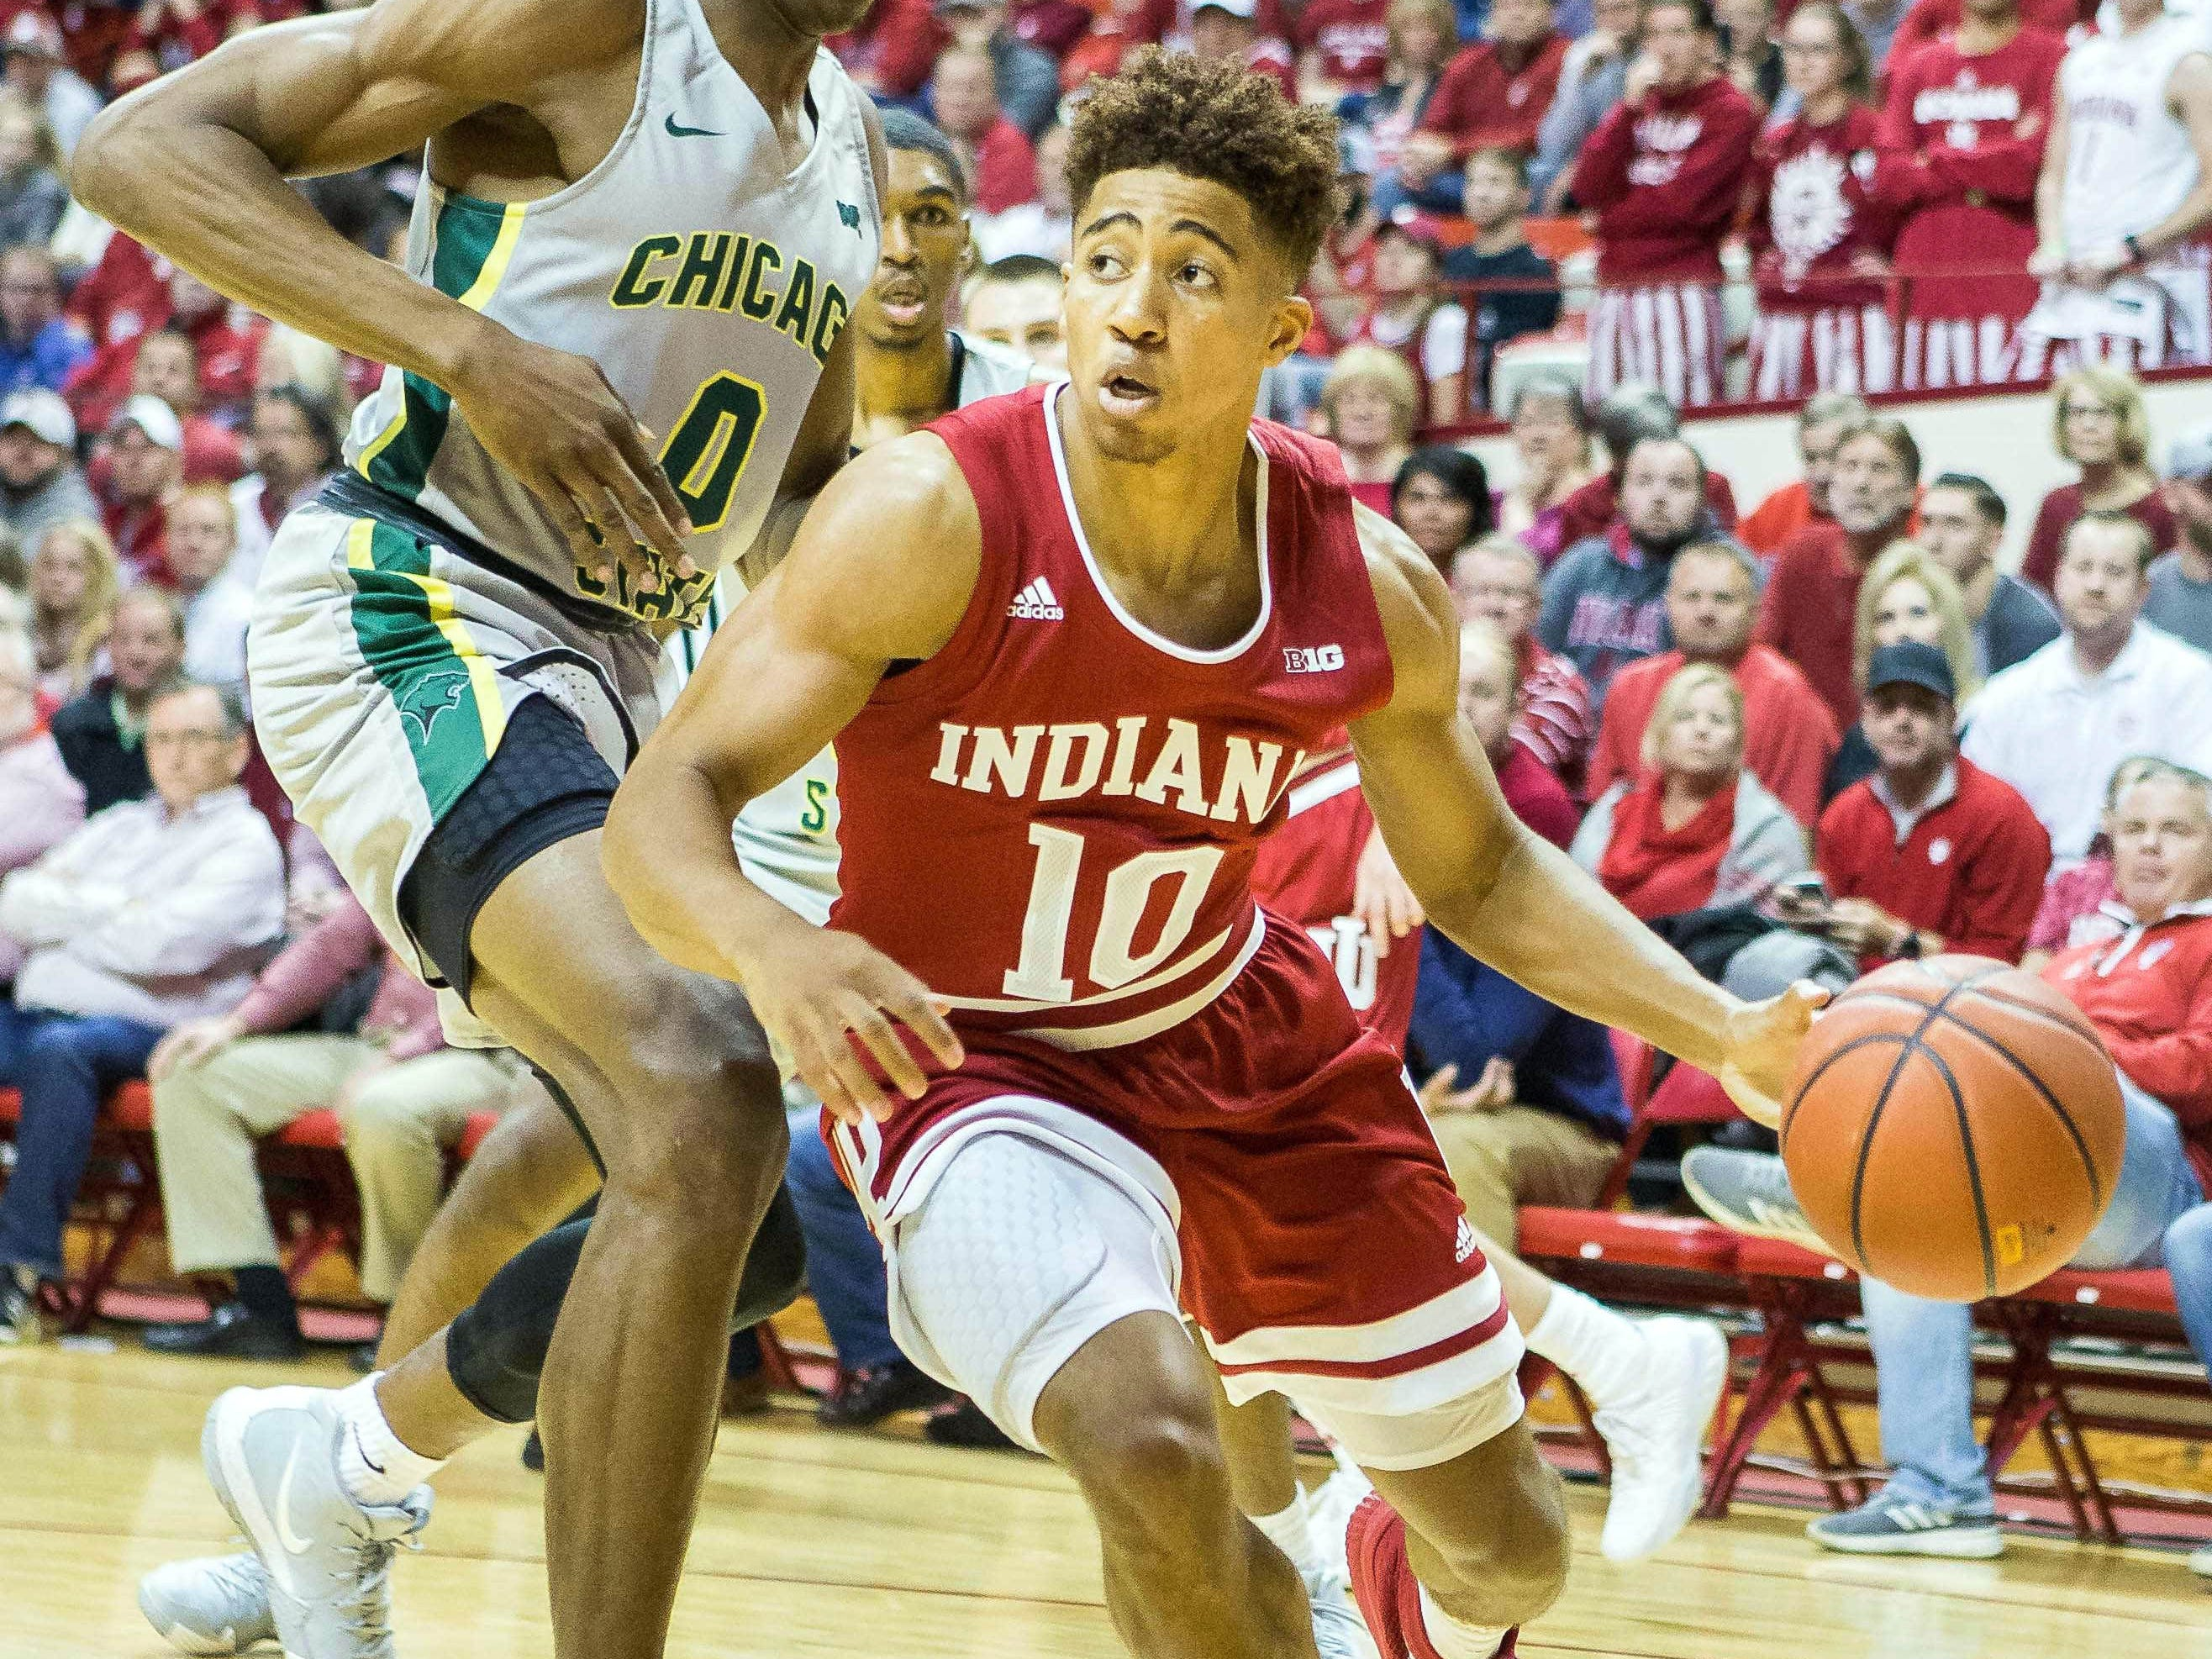 Indiana Hoosiers guard Rob Phinisee (10) dribbles the ball while Chicago State Cougars forward Ken Odiase (0) defends in the first half at Assembly Hall.